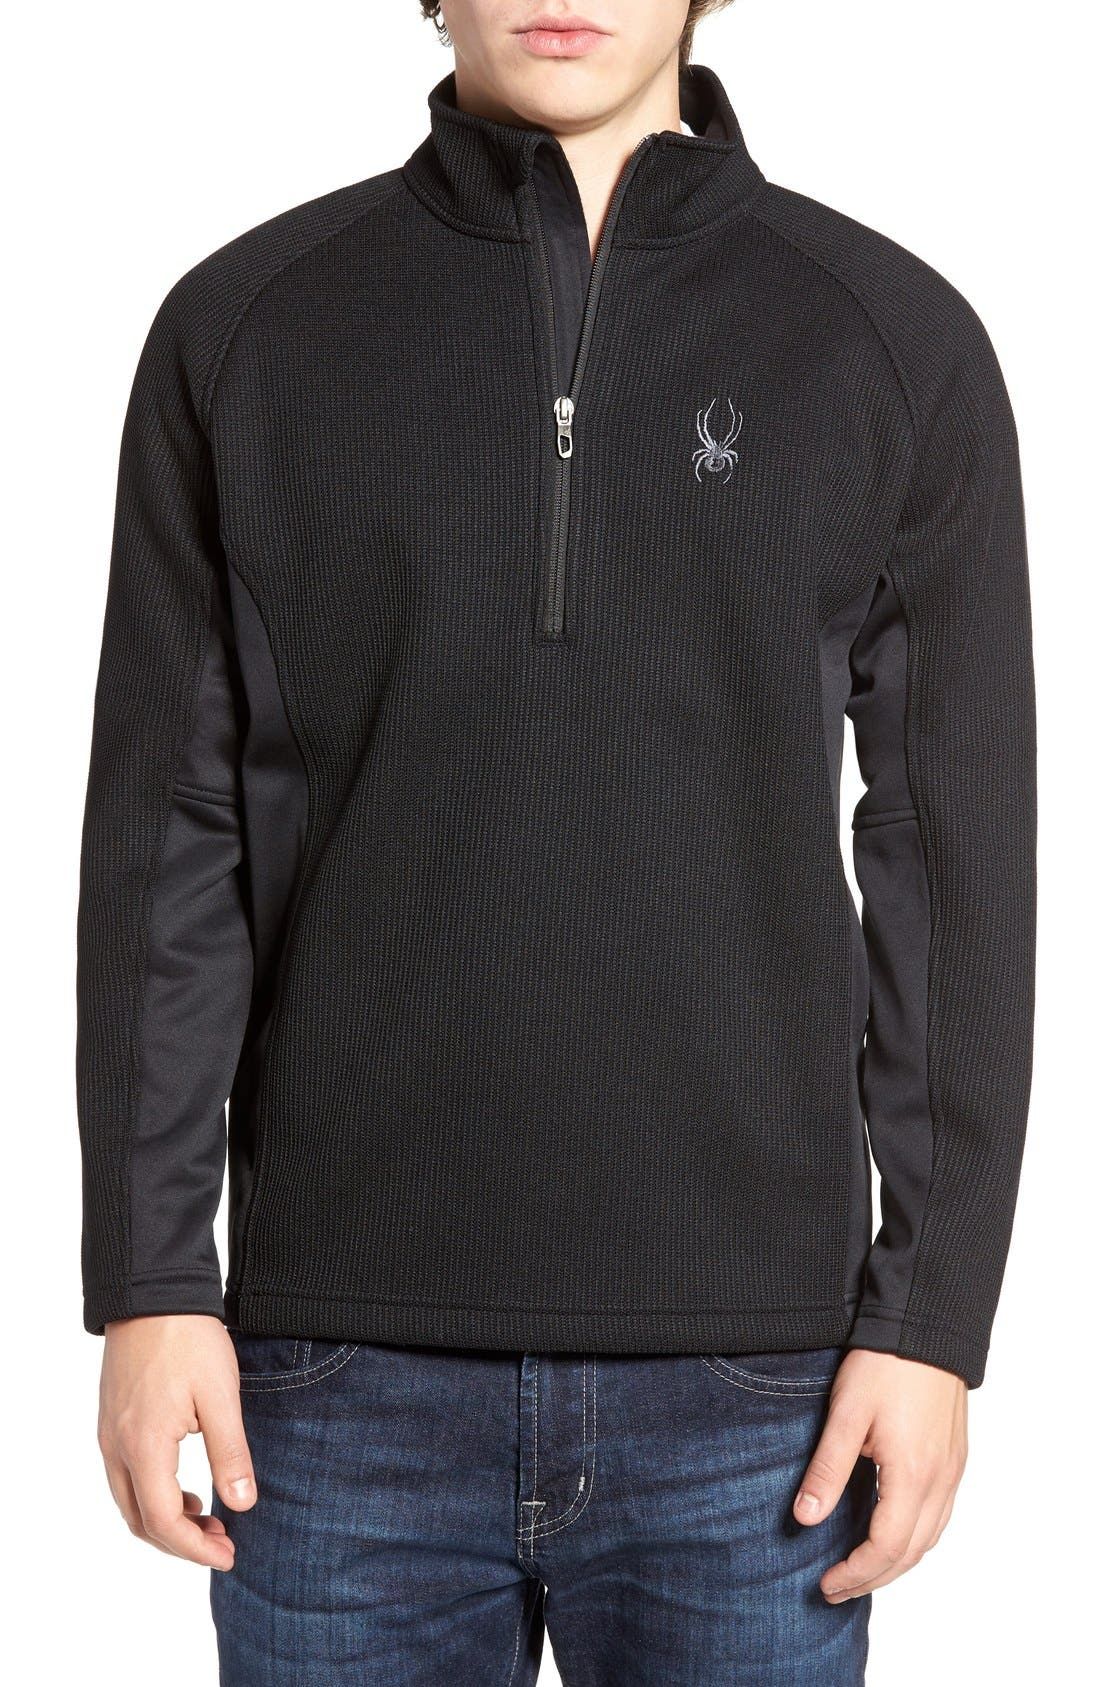 Spyder Pullover Sweater